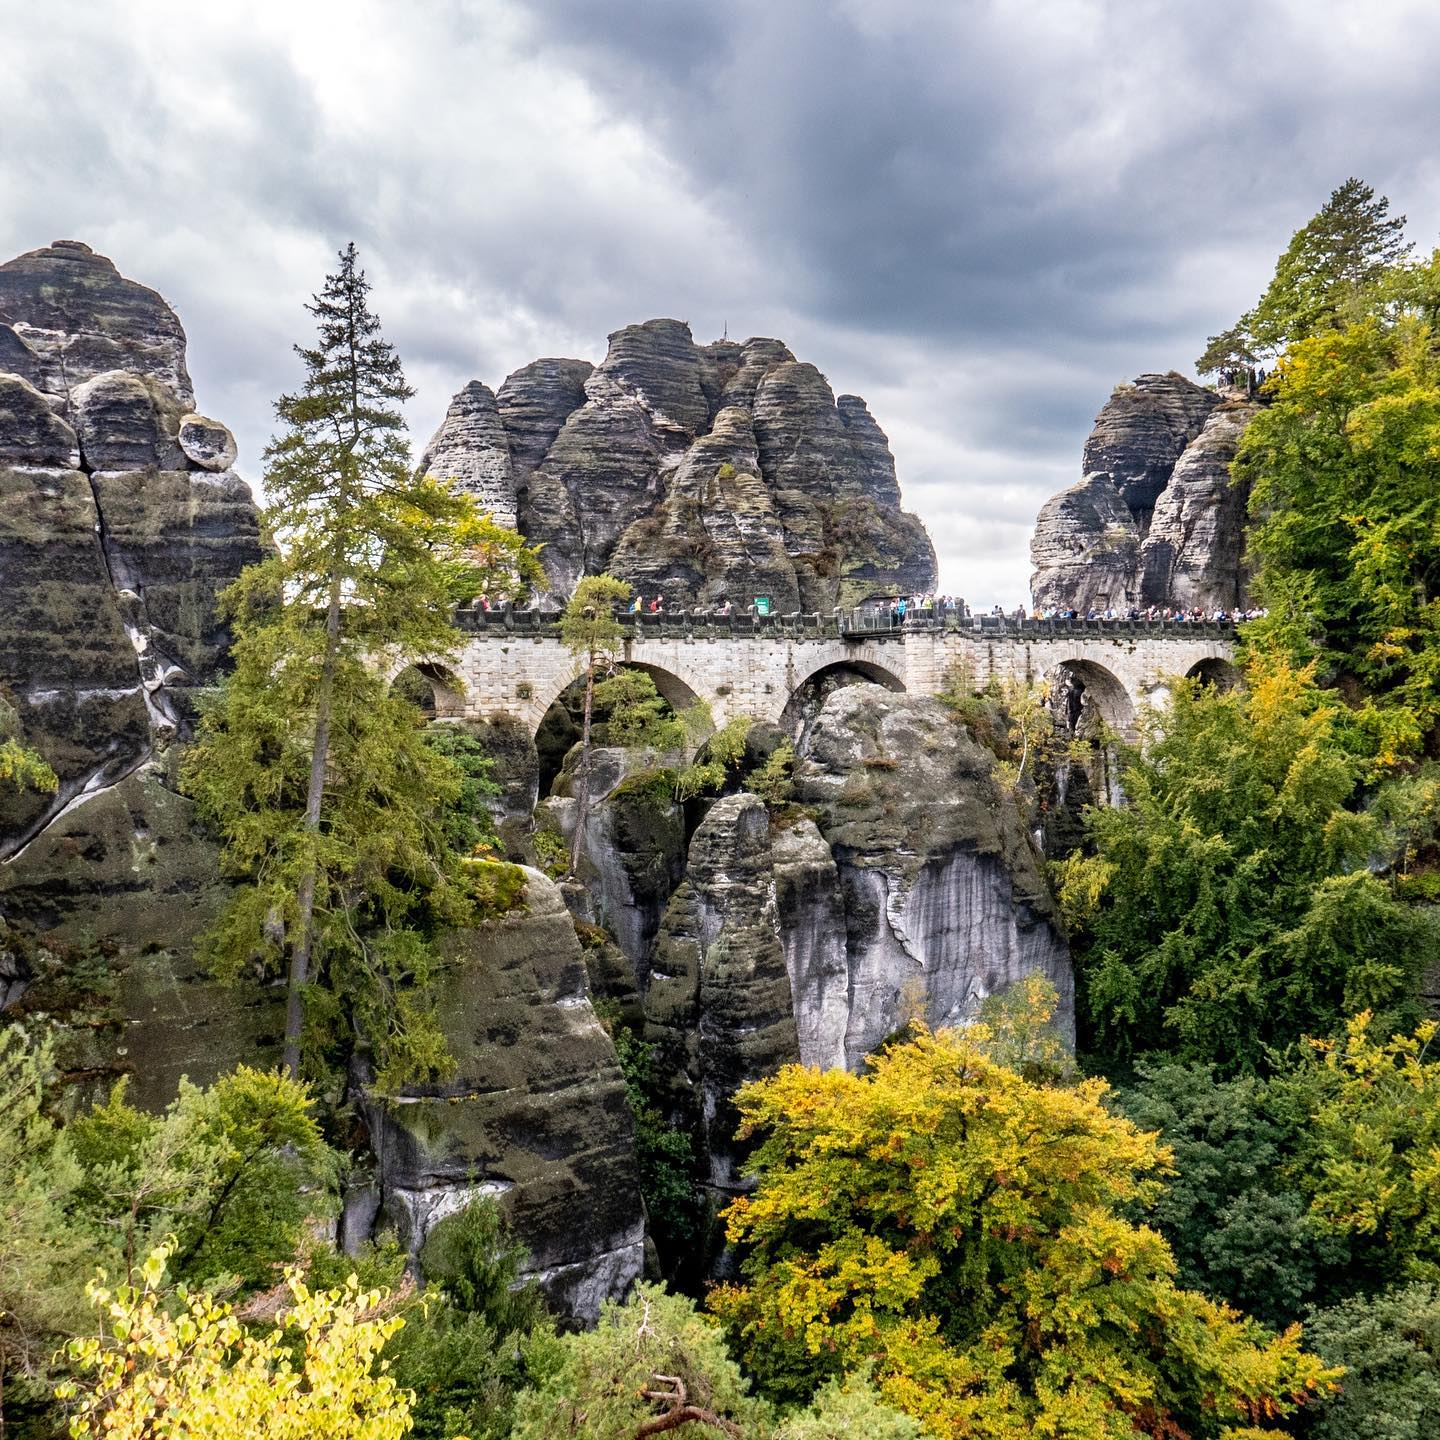 The Bastei picture